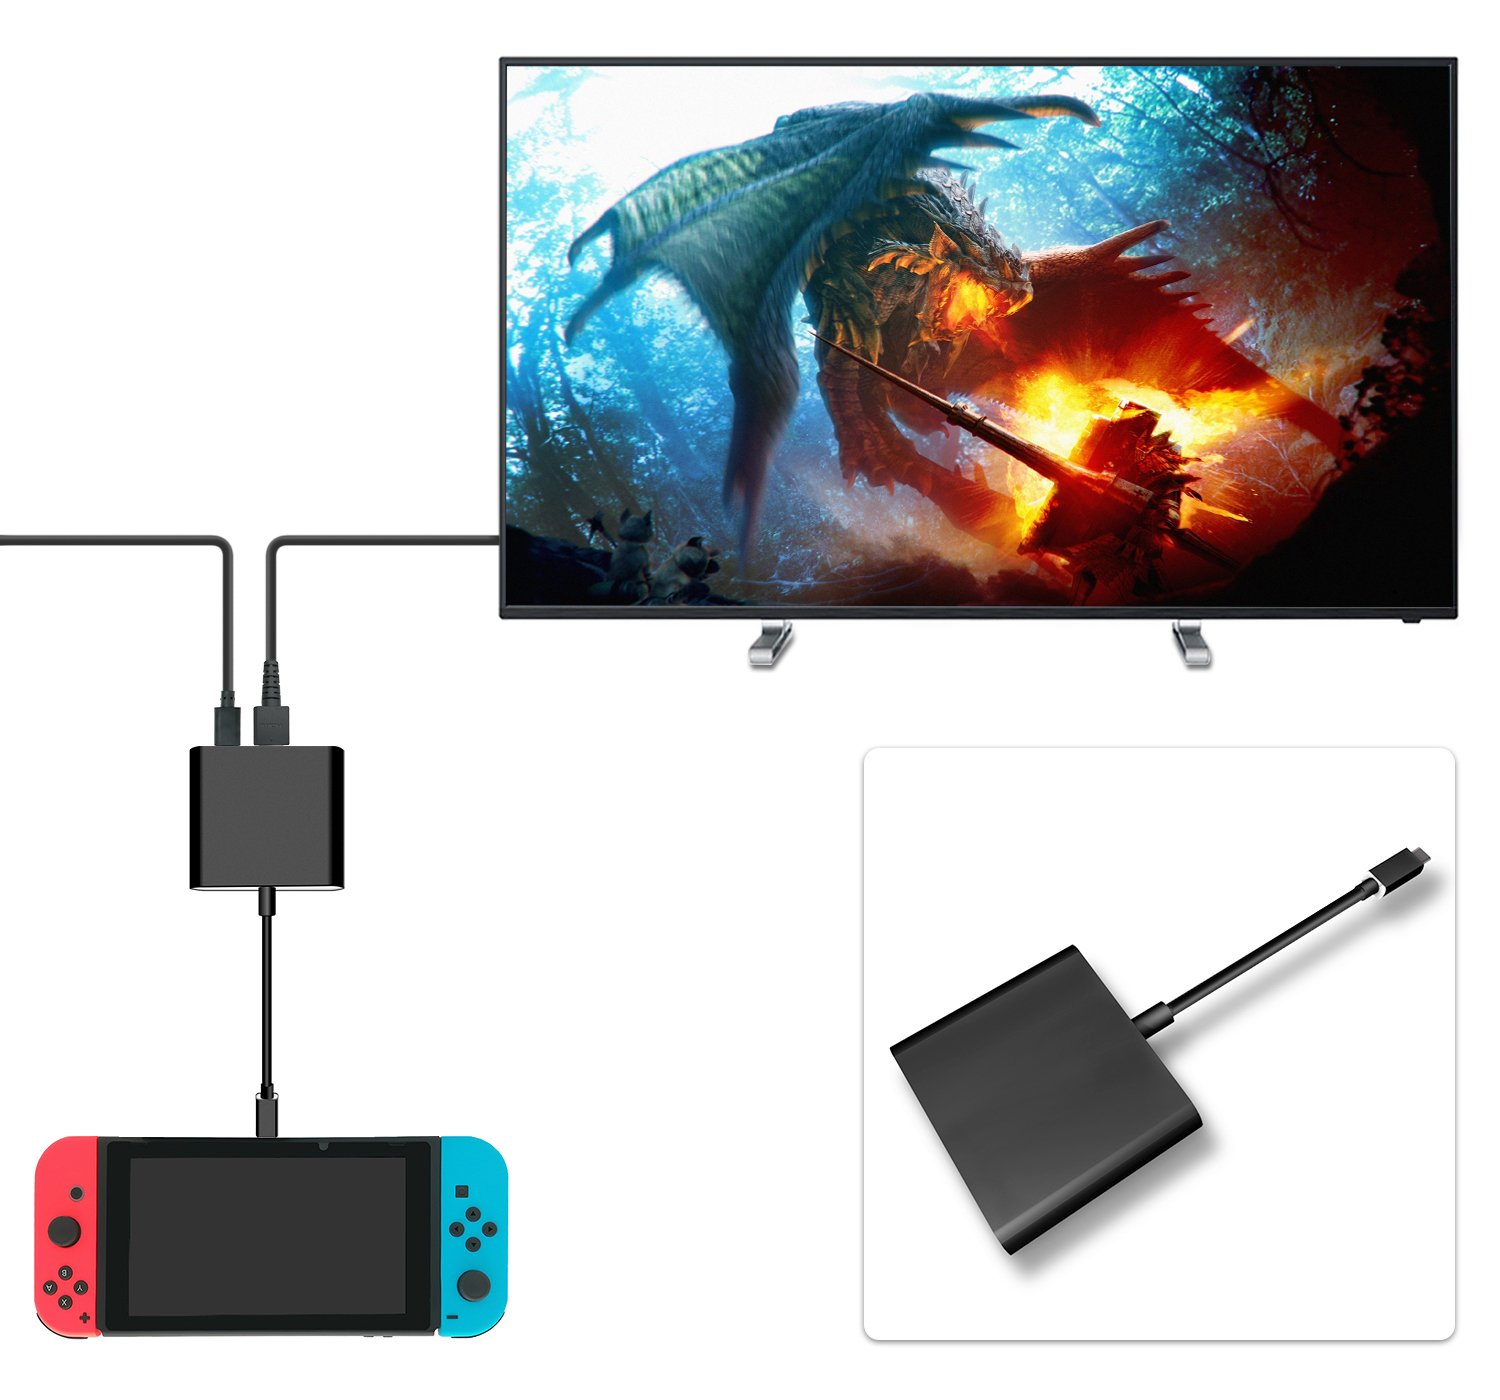 FastSnail HDMI Type C Hub Adapter for Nintendo Switch, HDMI Converter Dock Cable for Switch (Black)